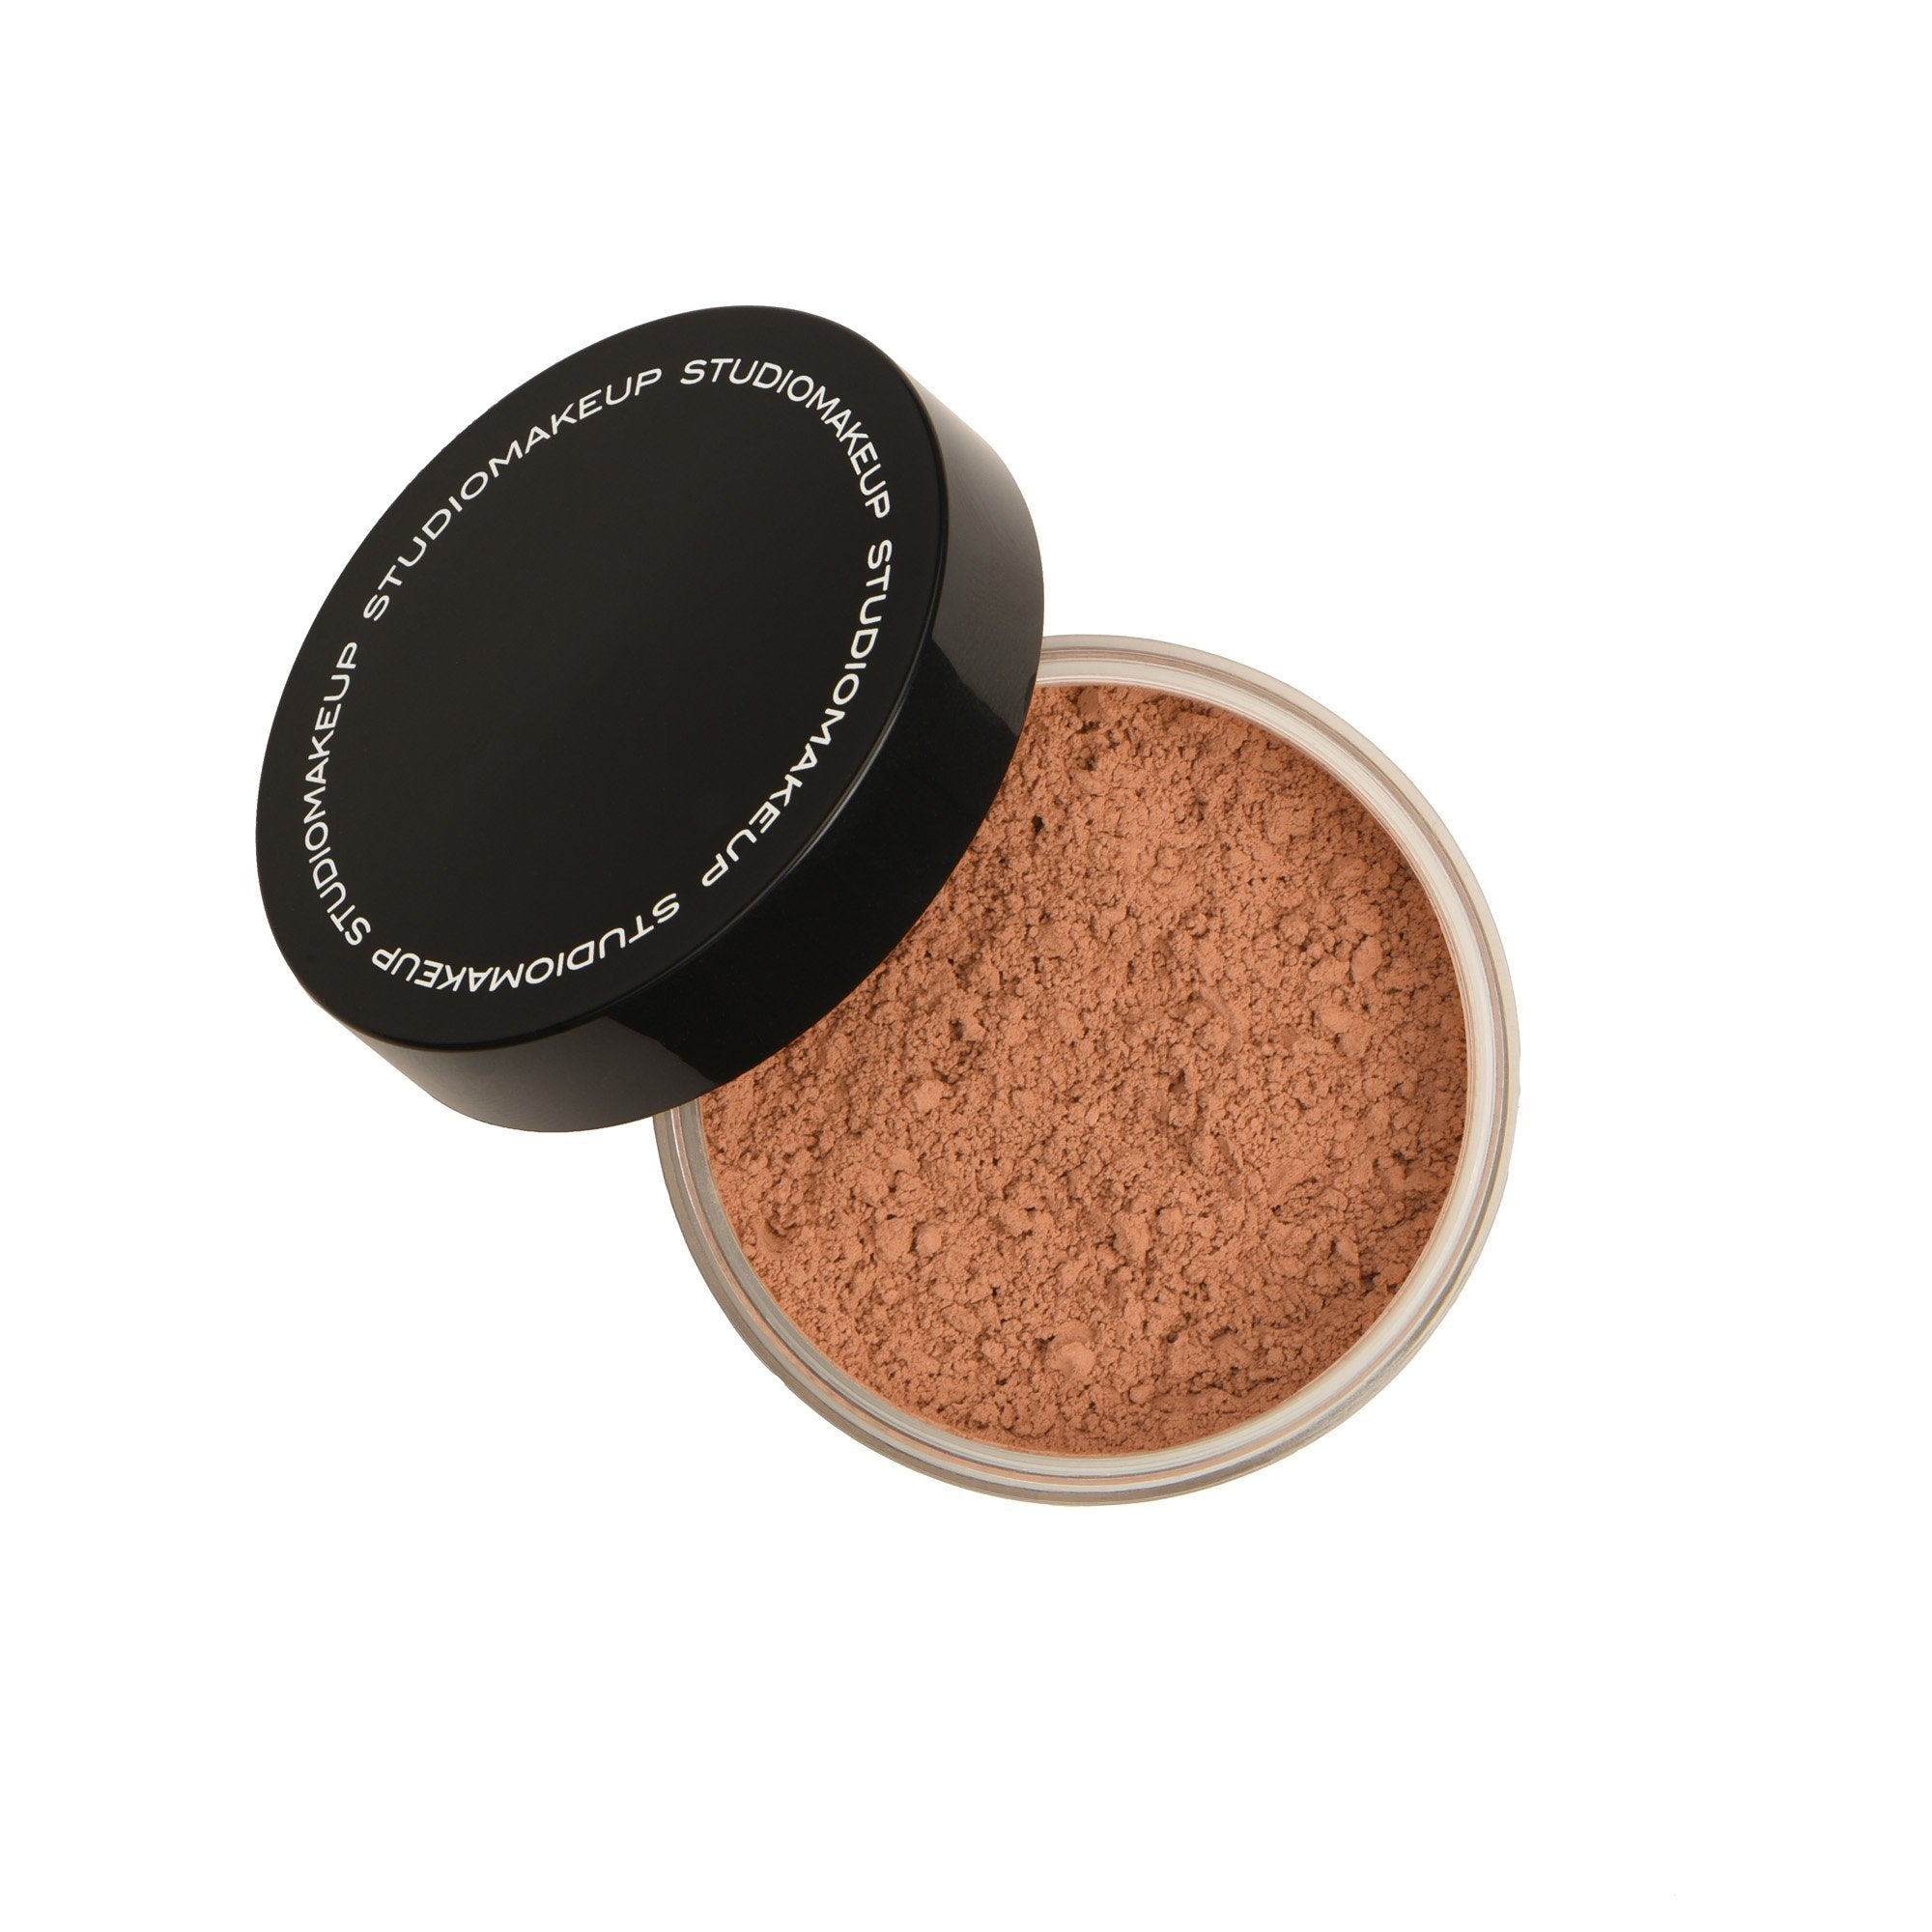 SOFT FOCUS LOOSE POWDER